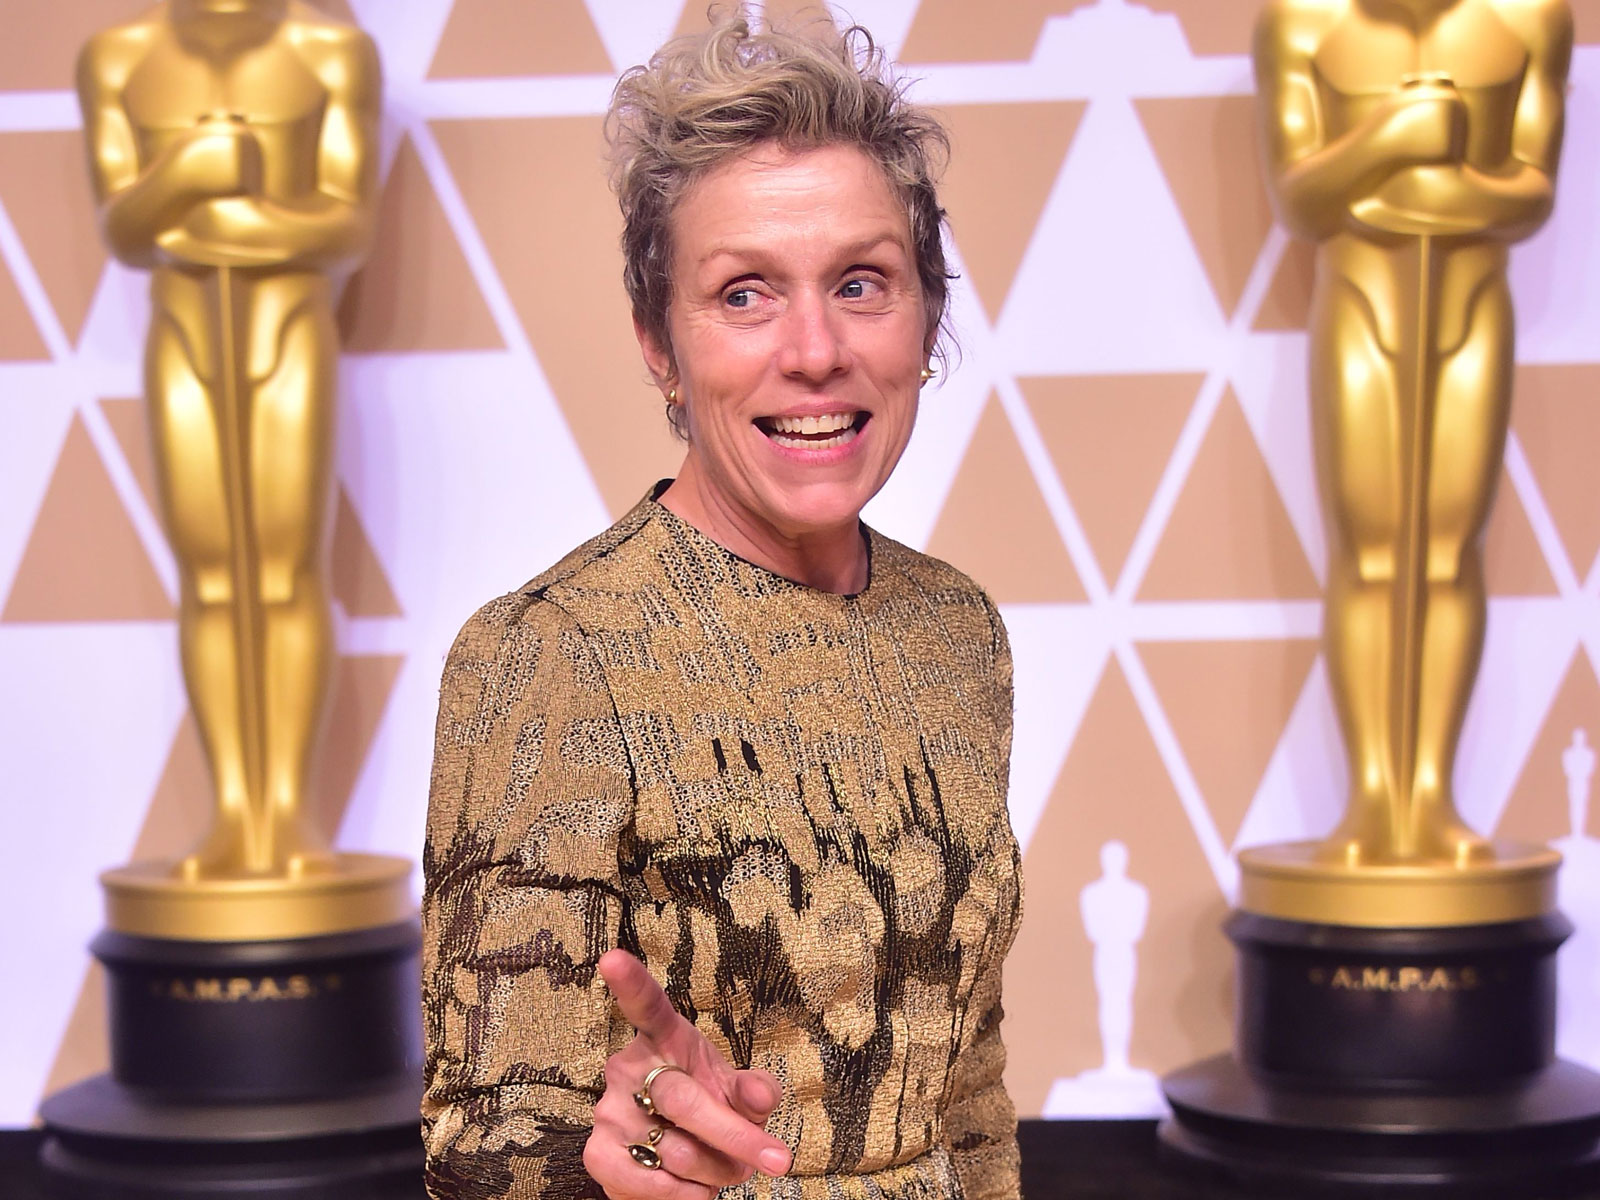 Wolfgang Puck's Photographer Helped Recover Frances McDormand's Stolen Oscar